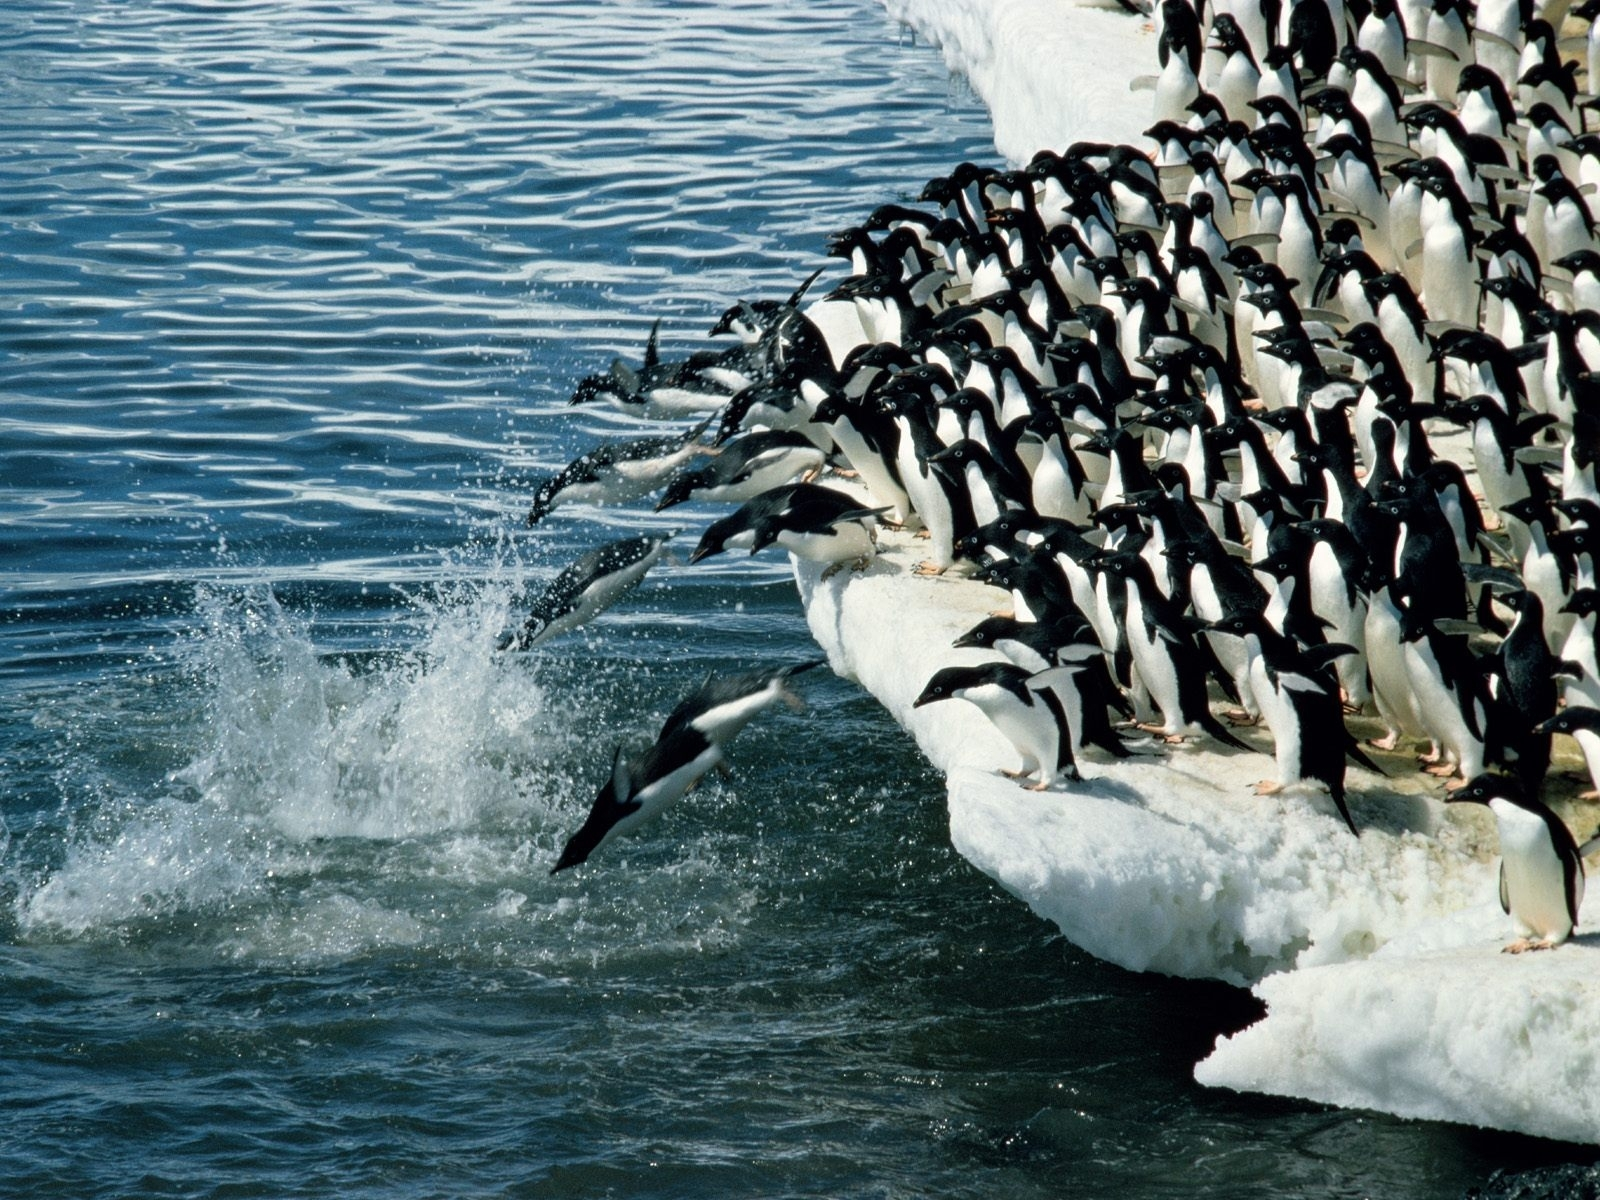 4123 download wallpaper Animals, Winter, Water, Pinguins, Sea, Antarctica, Arctic screensavers and pictures for free